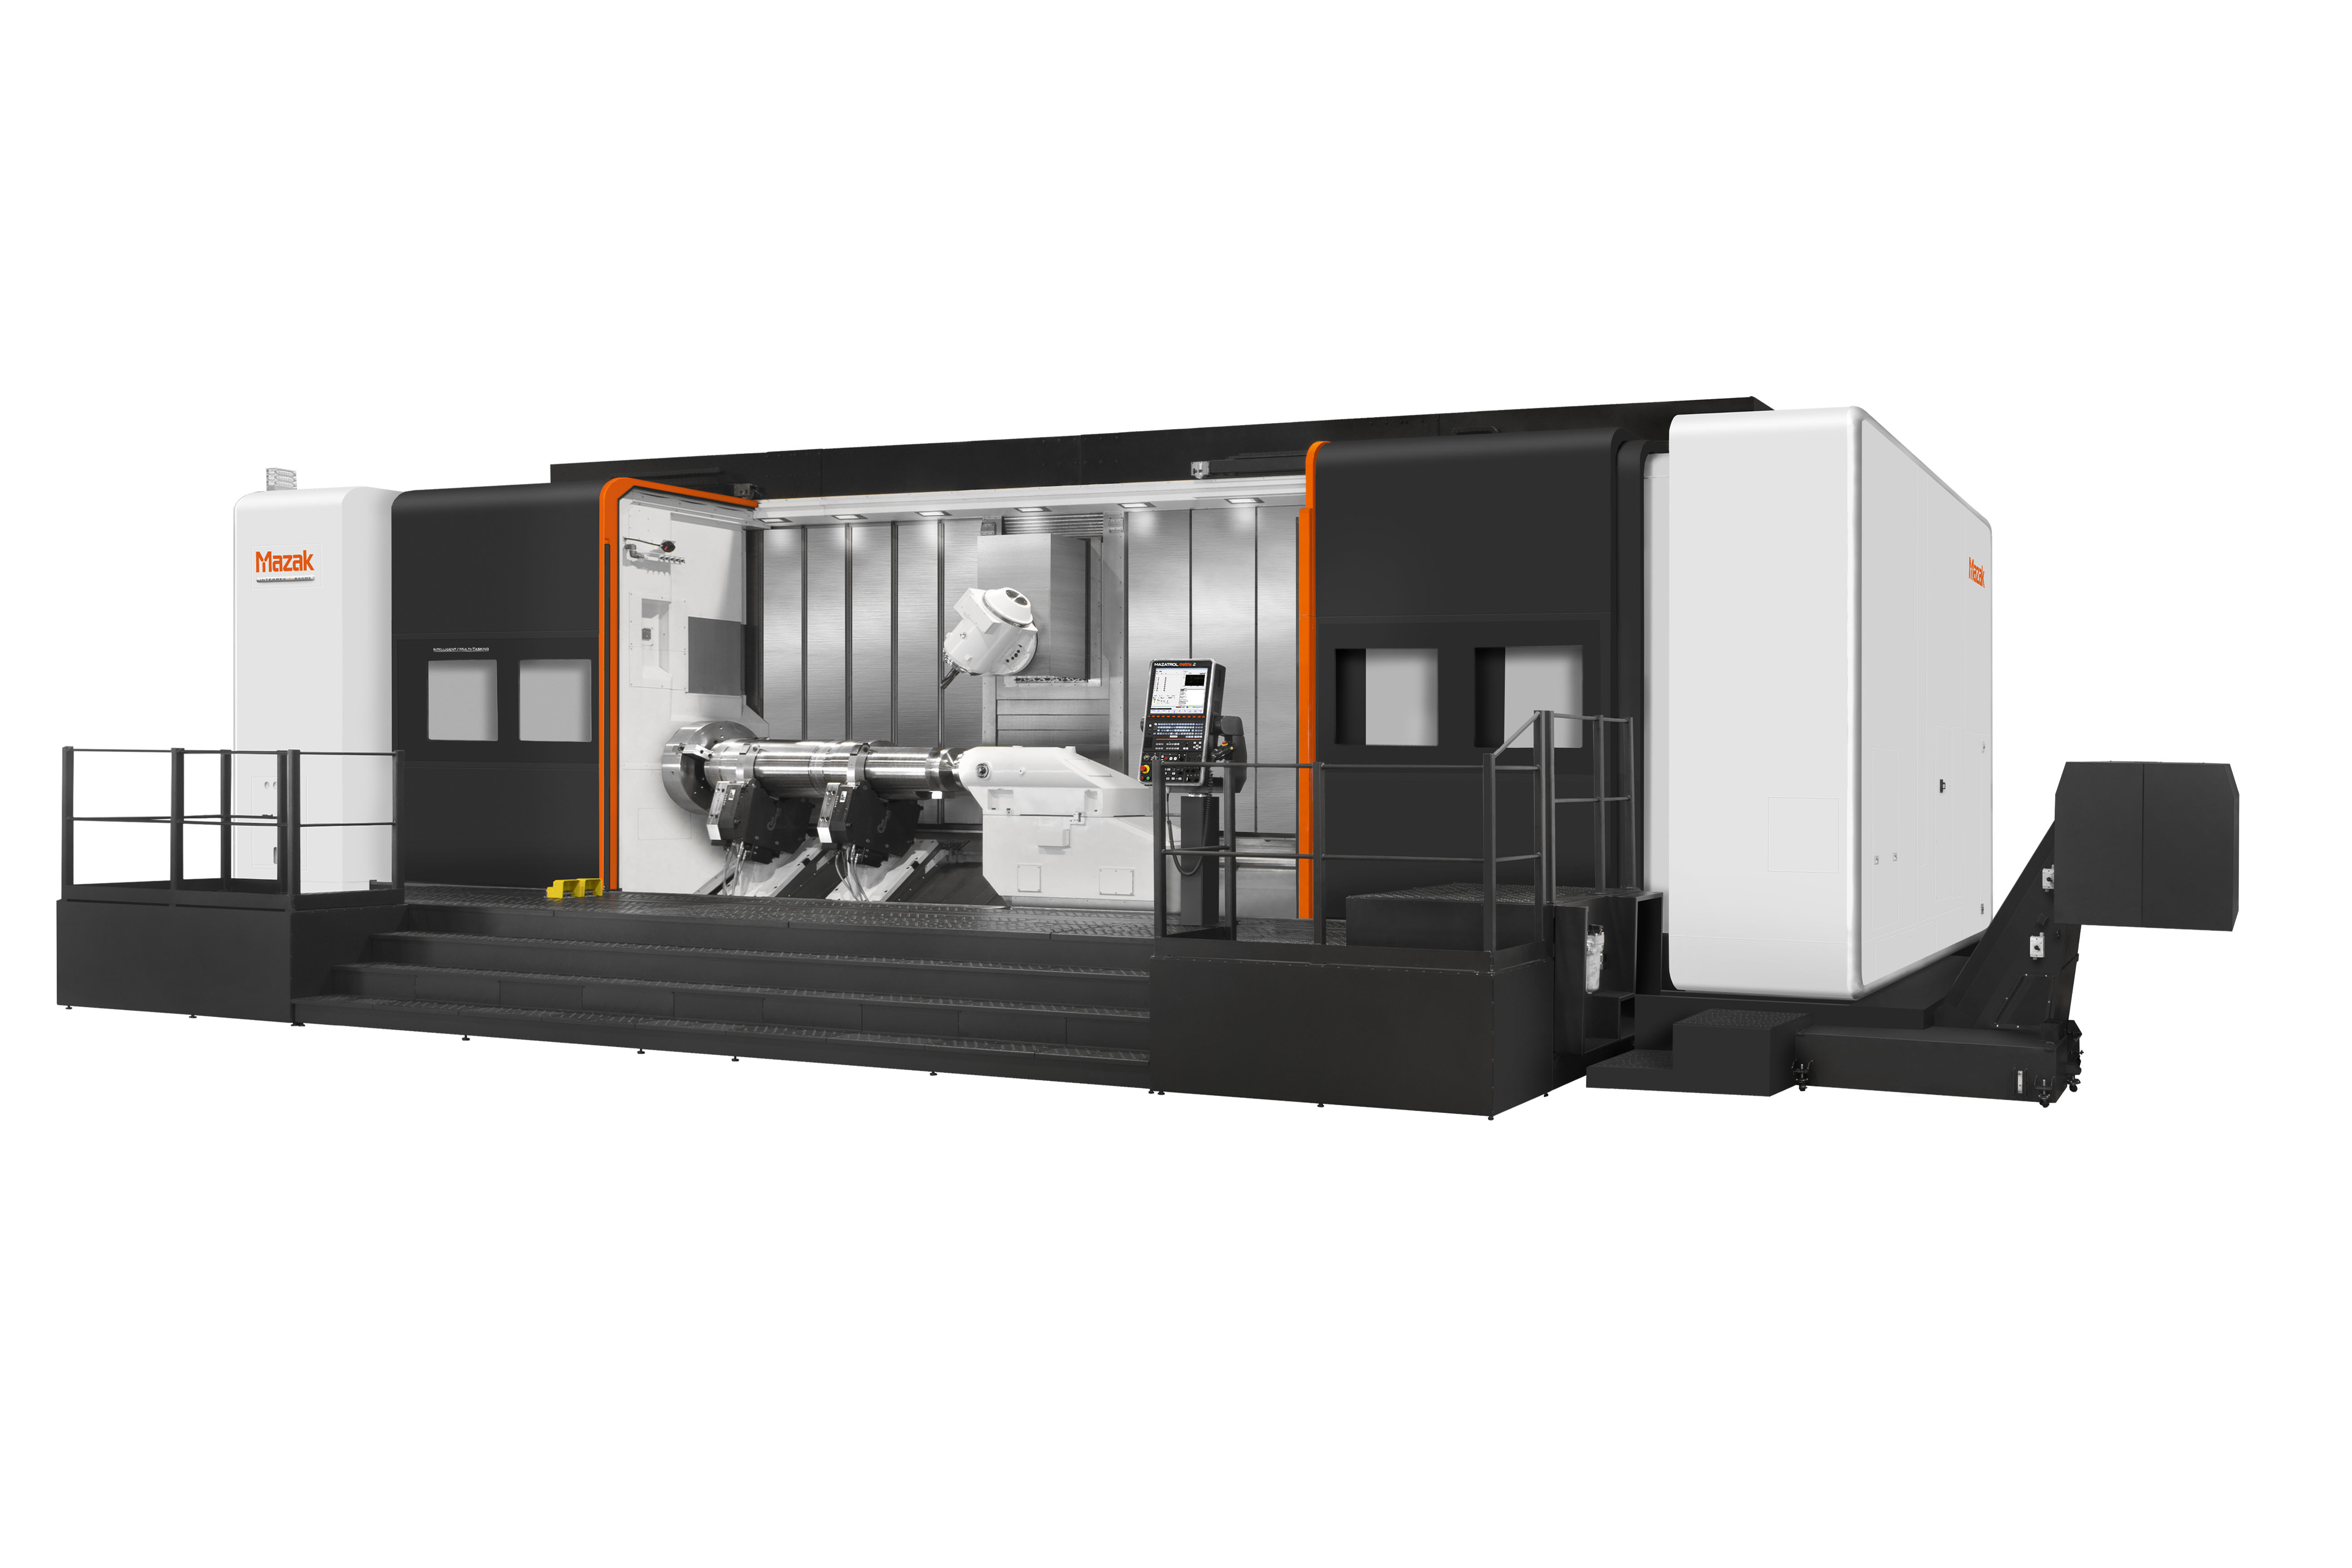 New Mazak INTEGREX e-800H II Processes Extra-Large Parts in Single